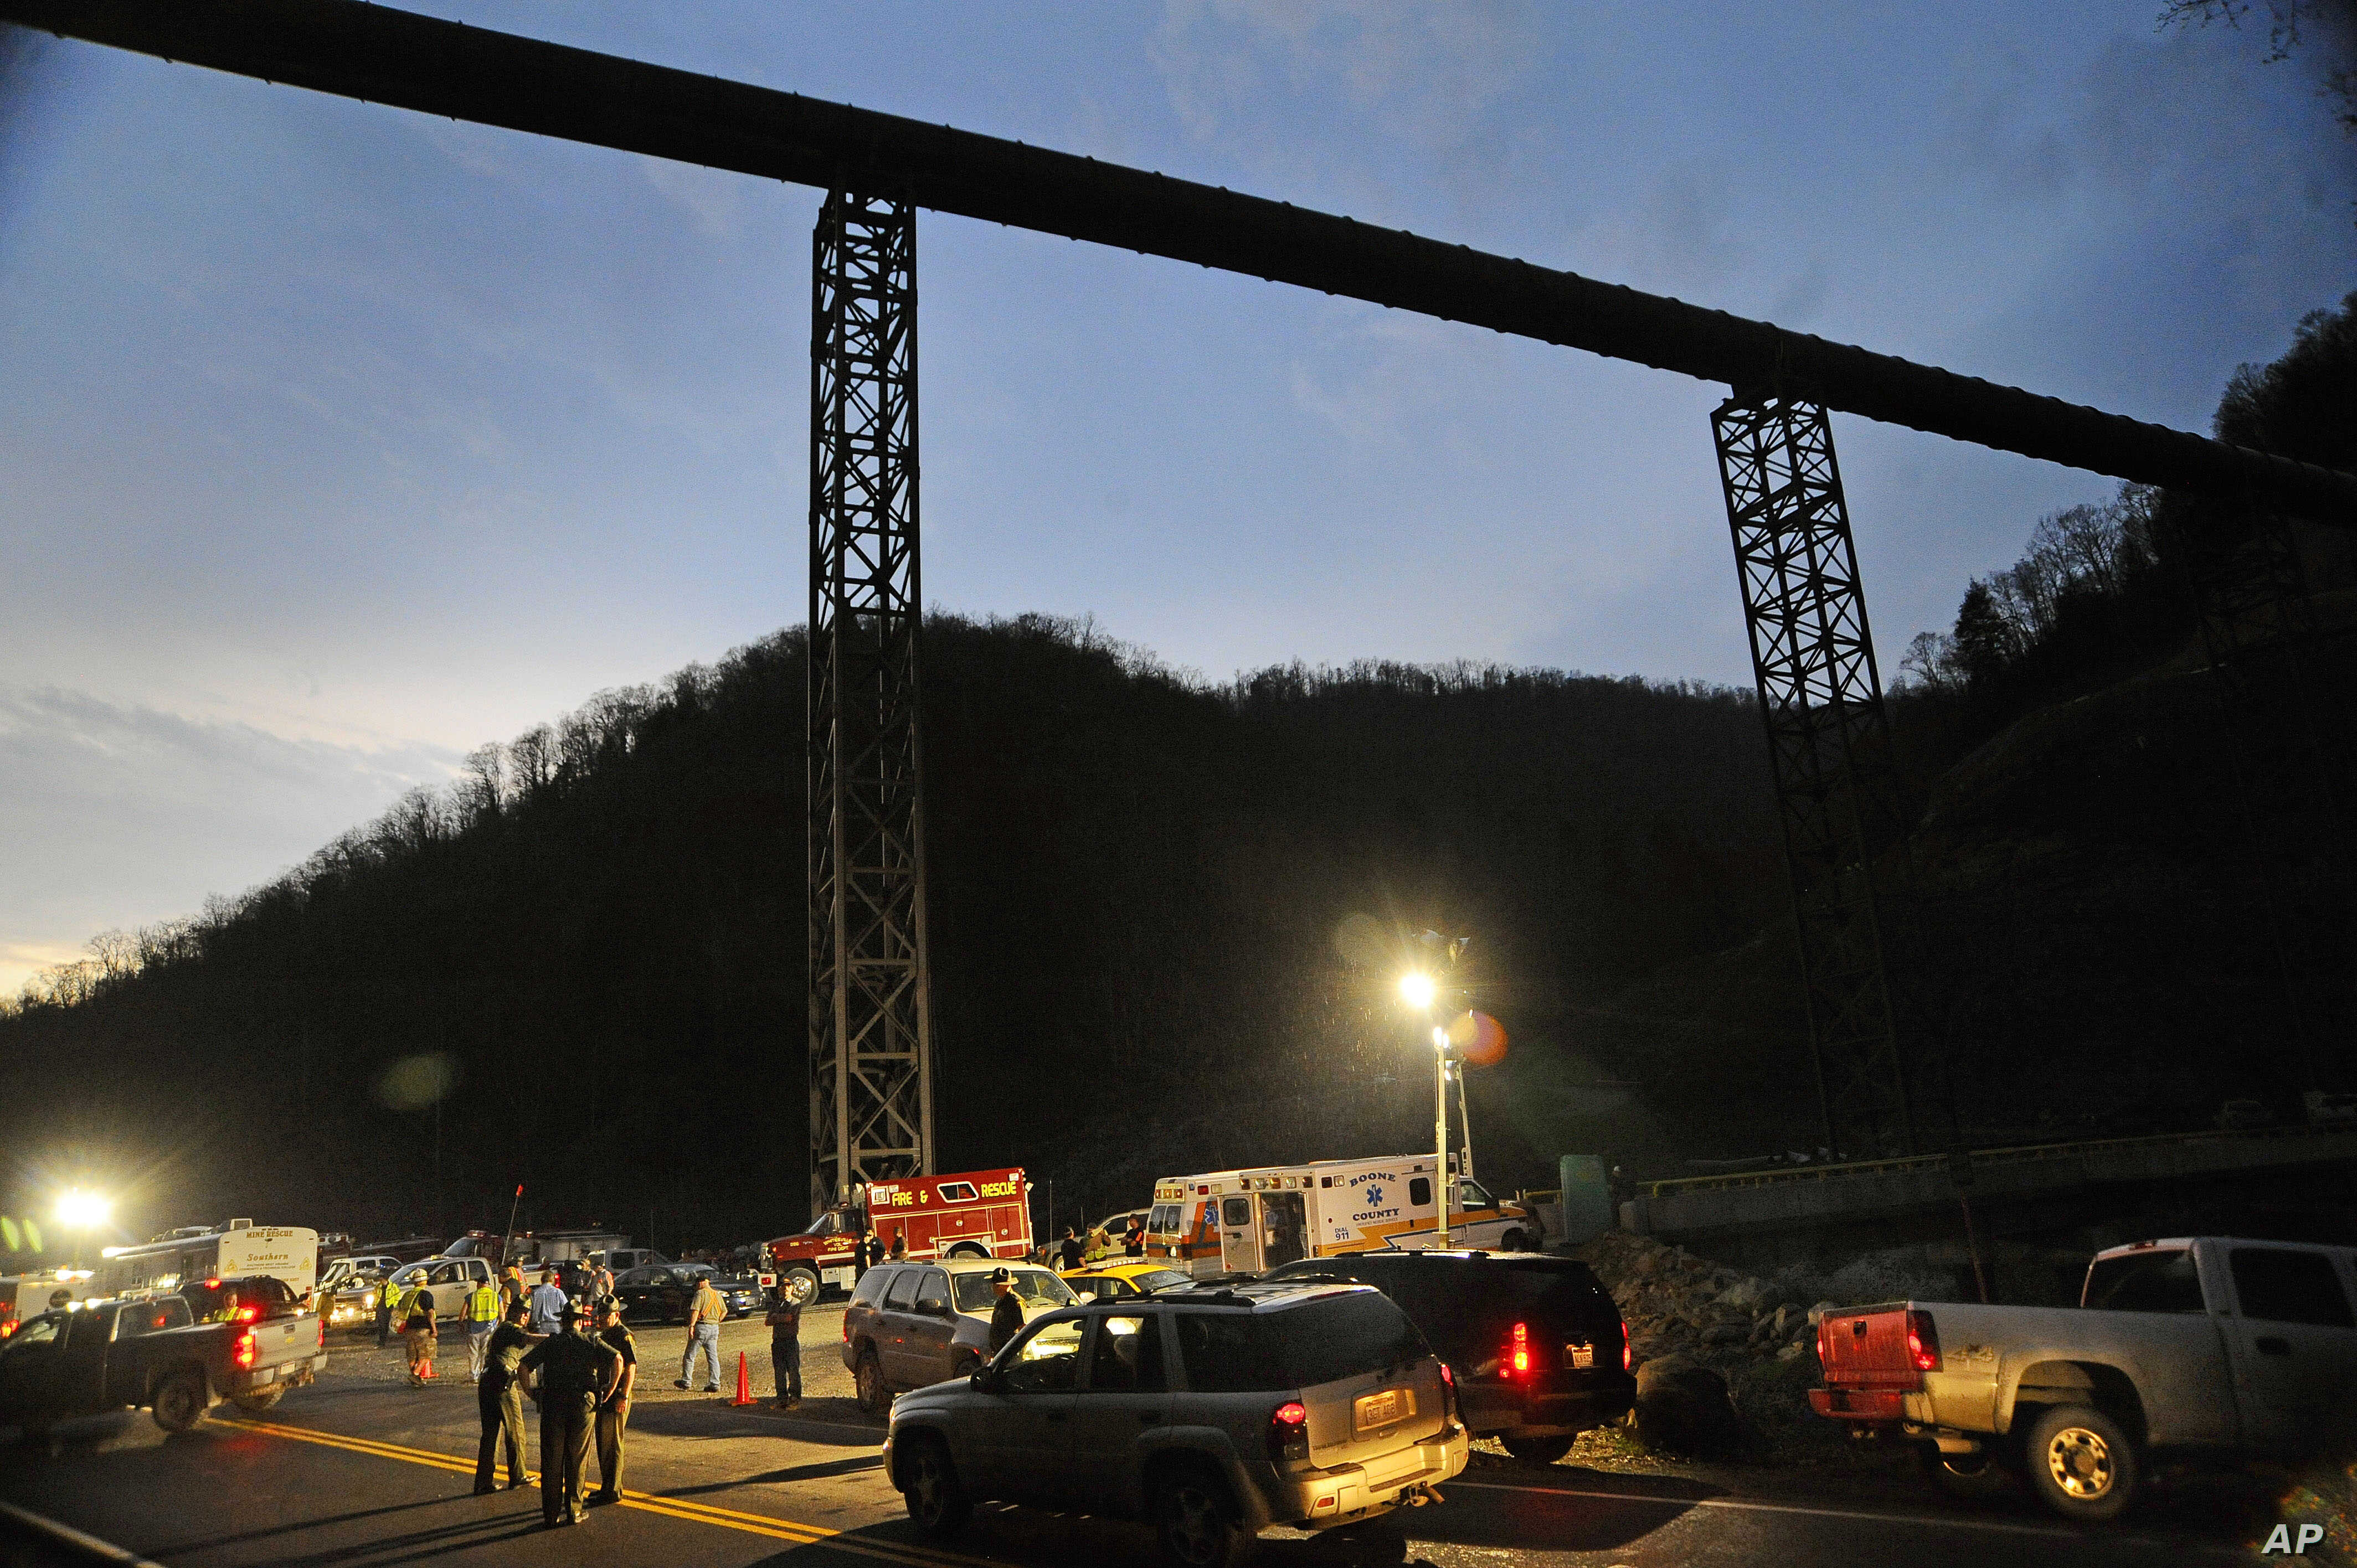 West Virginia State Police direct traffic at Massey Energy's Upper Big Branch Coal Mine in Montcoal, W.Va. 29 coal miners were killed in the April 2010 explosion, one of the worst mining disasters in the US. (AP Photo/Jeff Gentner)